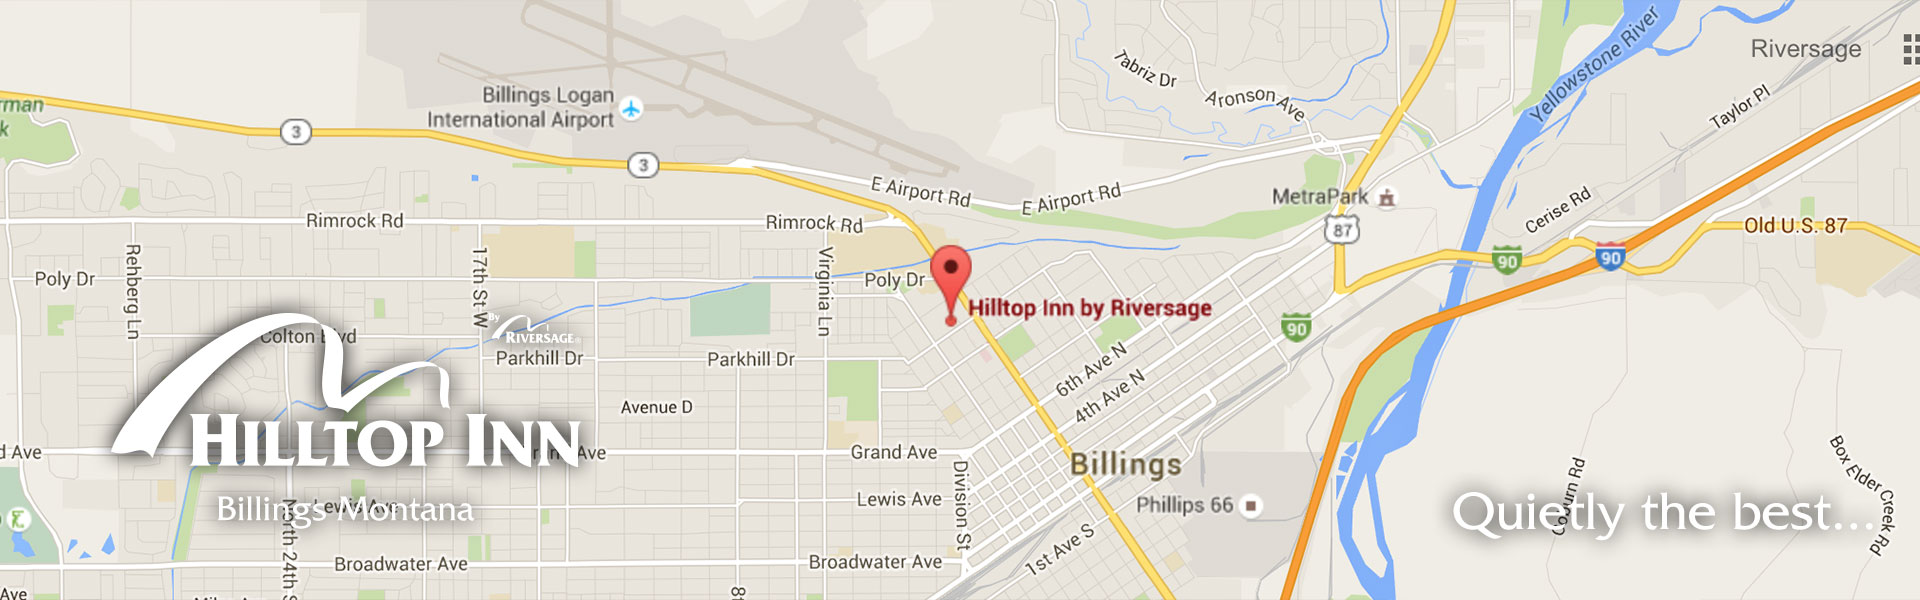 Contact Information and Location Directions for Hilltop Inn by ...